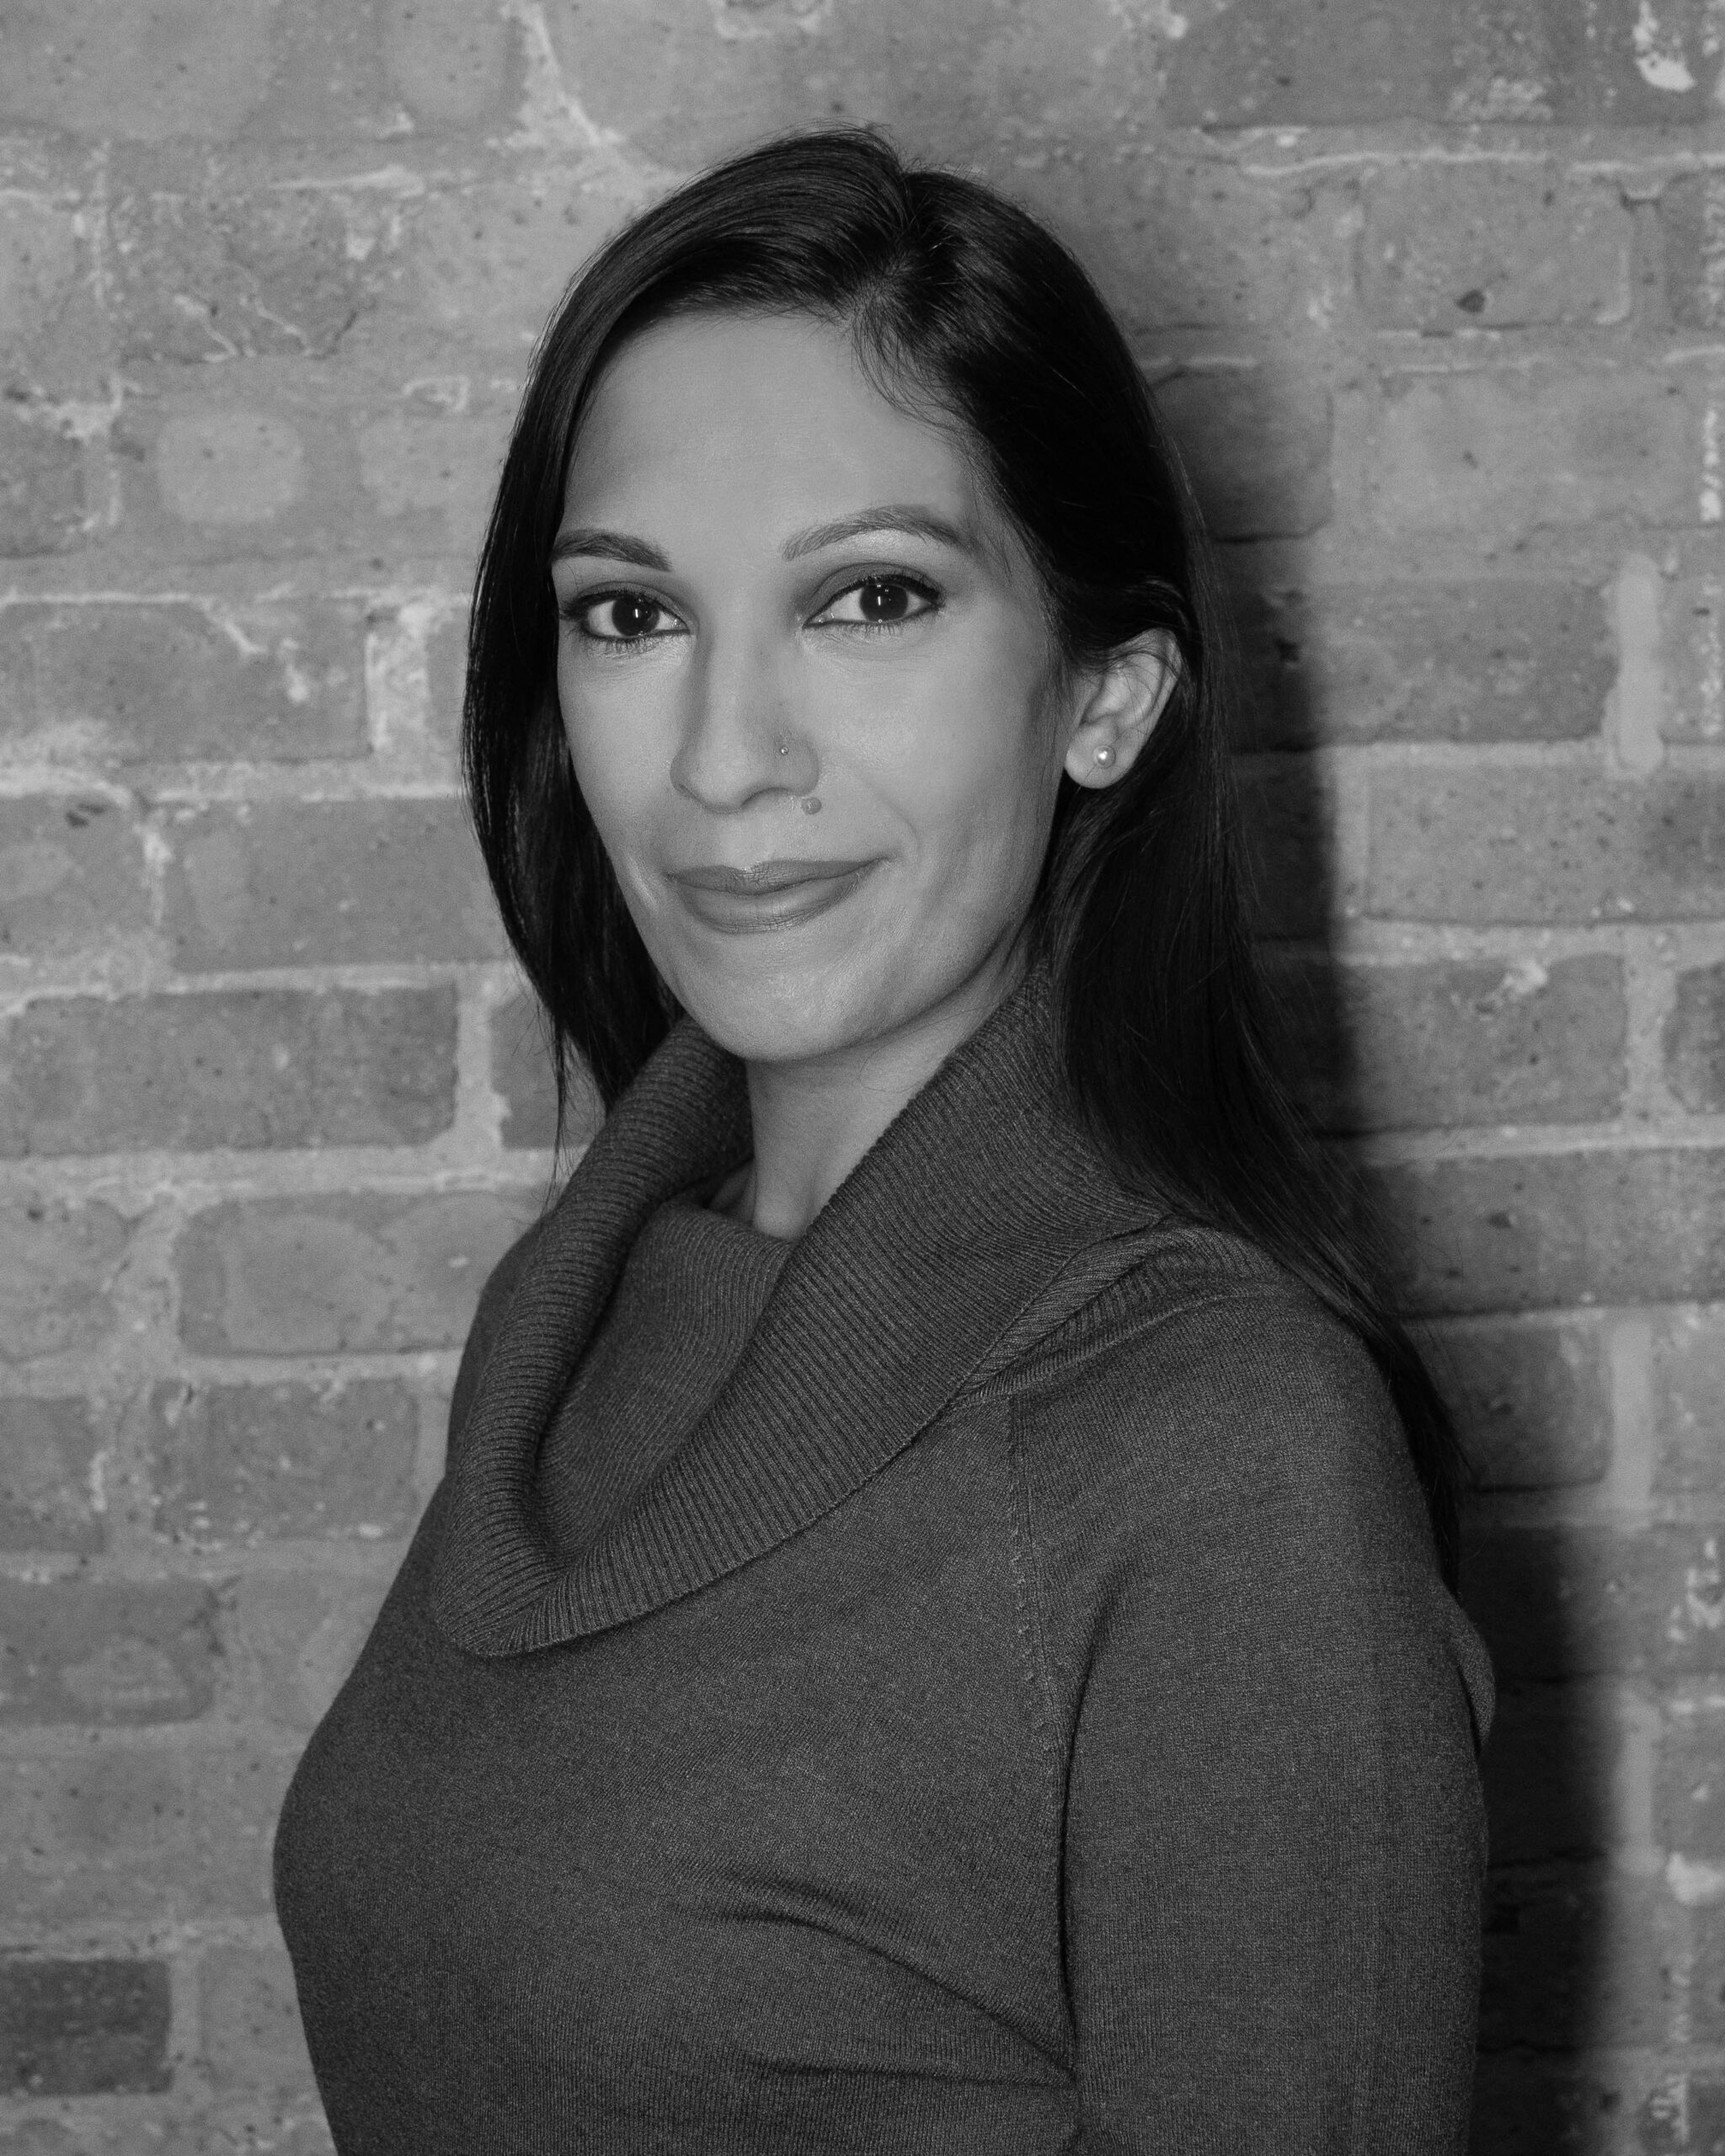 Saadia_Baig_Counselor_Naperville_Downers_Grove_Counseling_Grow Therapy_Teen_Counseling_Prenatal_Post-partum